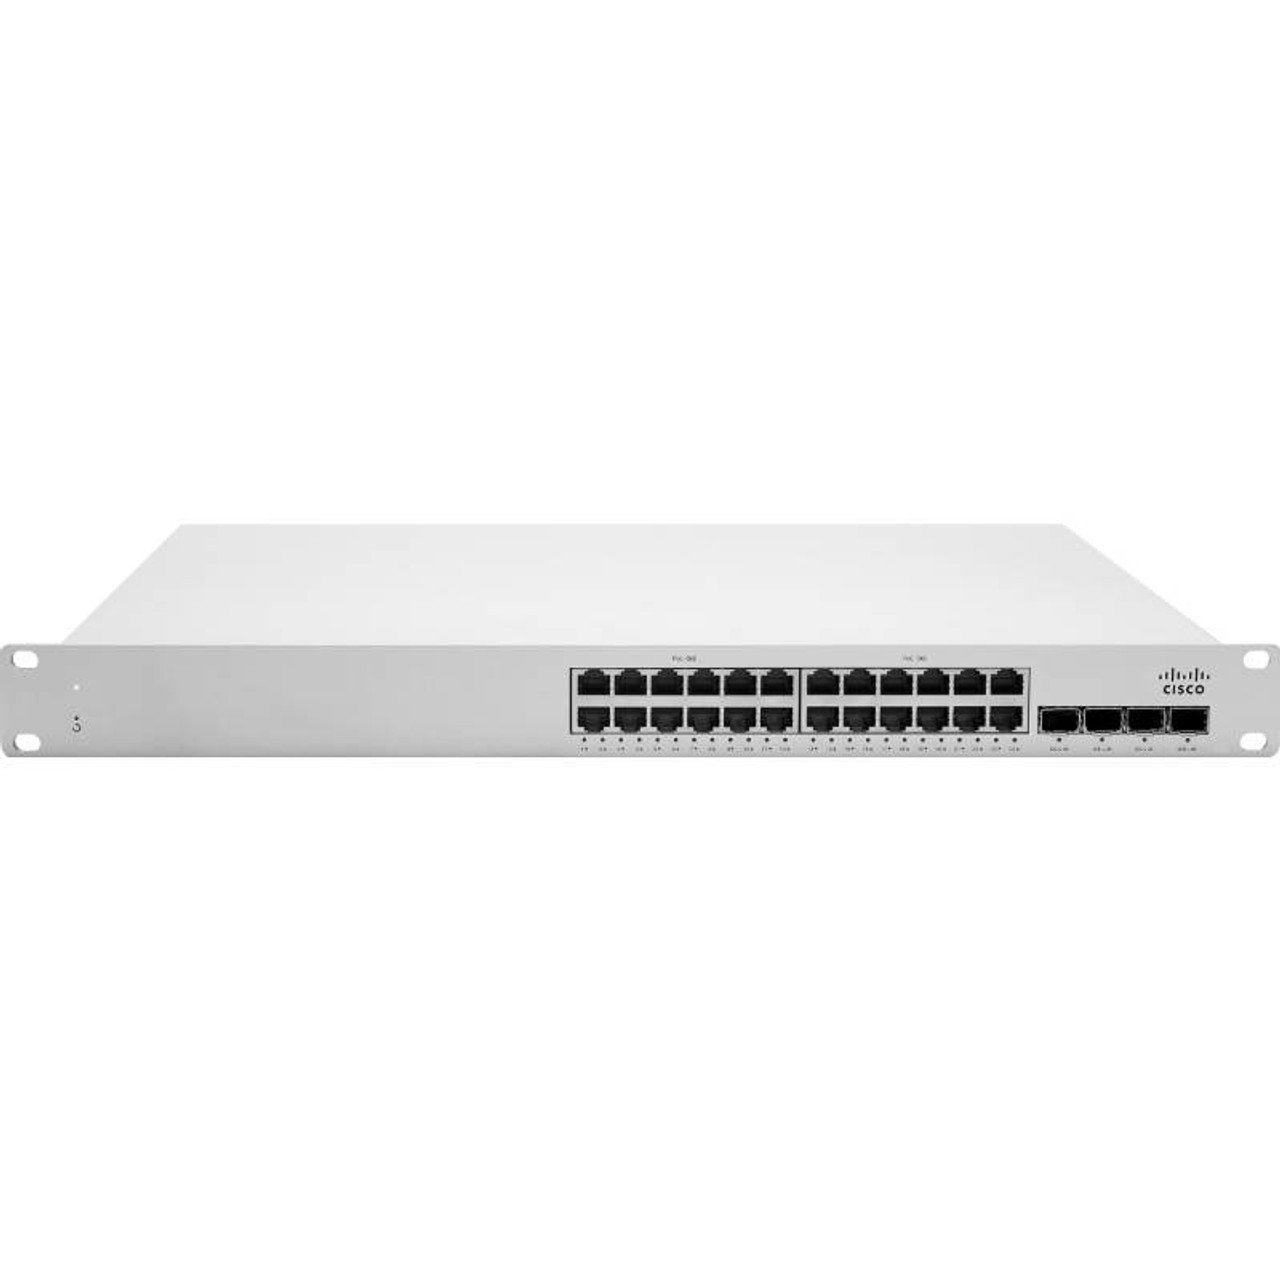 Image for Cisco Meraki MS250-24 L3 Stacking Cloud Managed 24 Port GigE Switch CX Computer Superstore